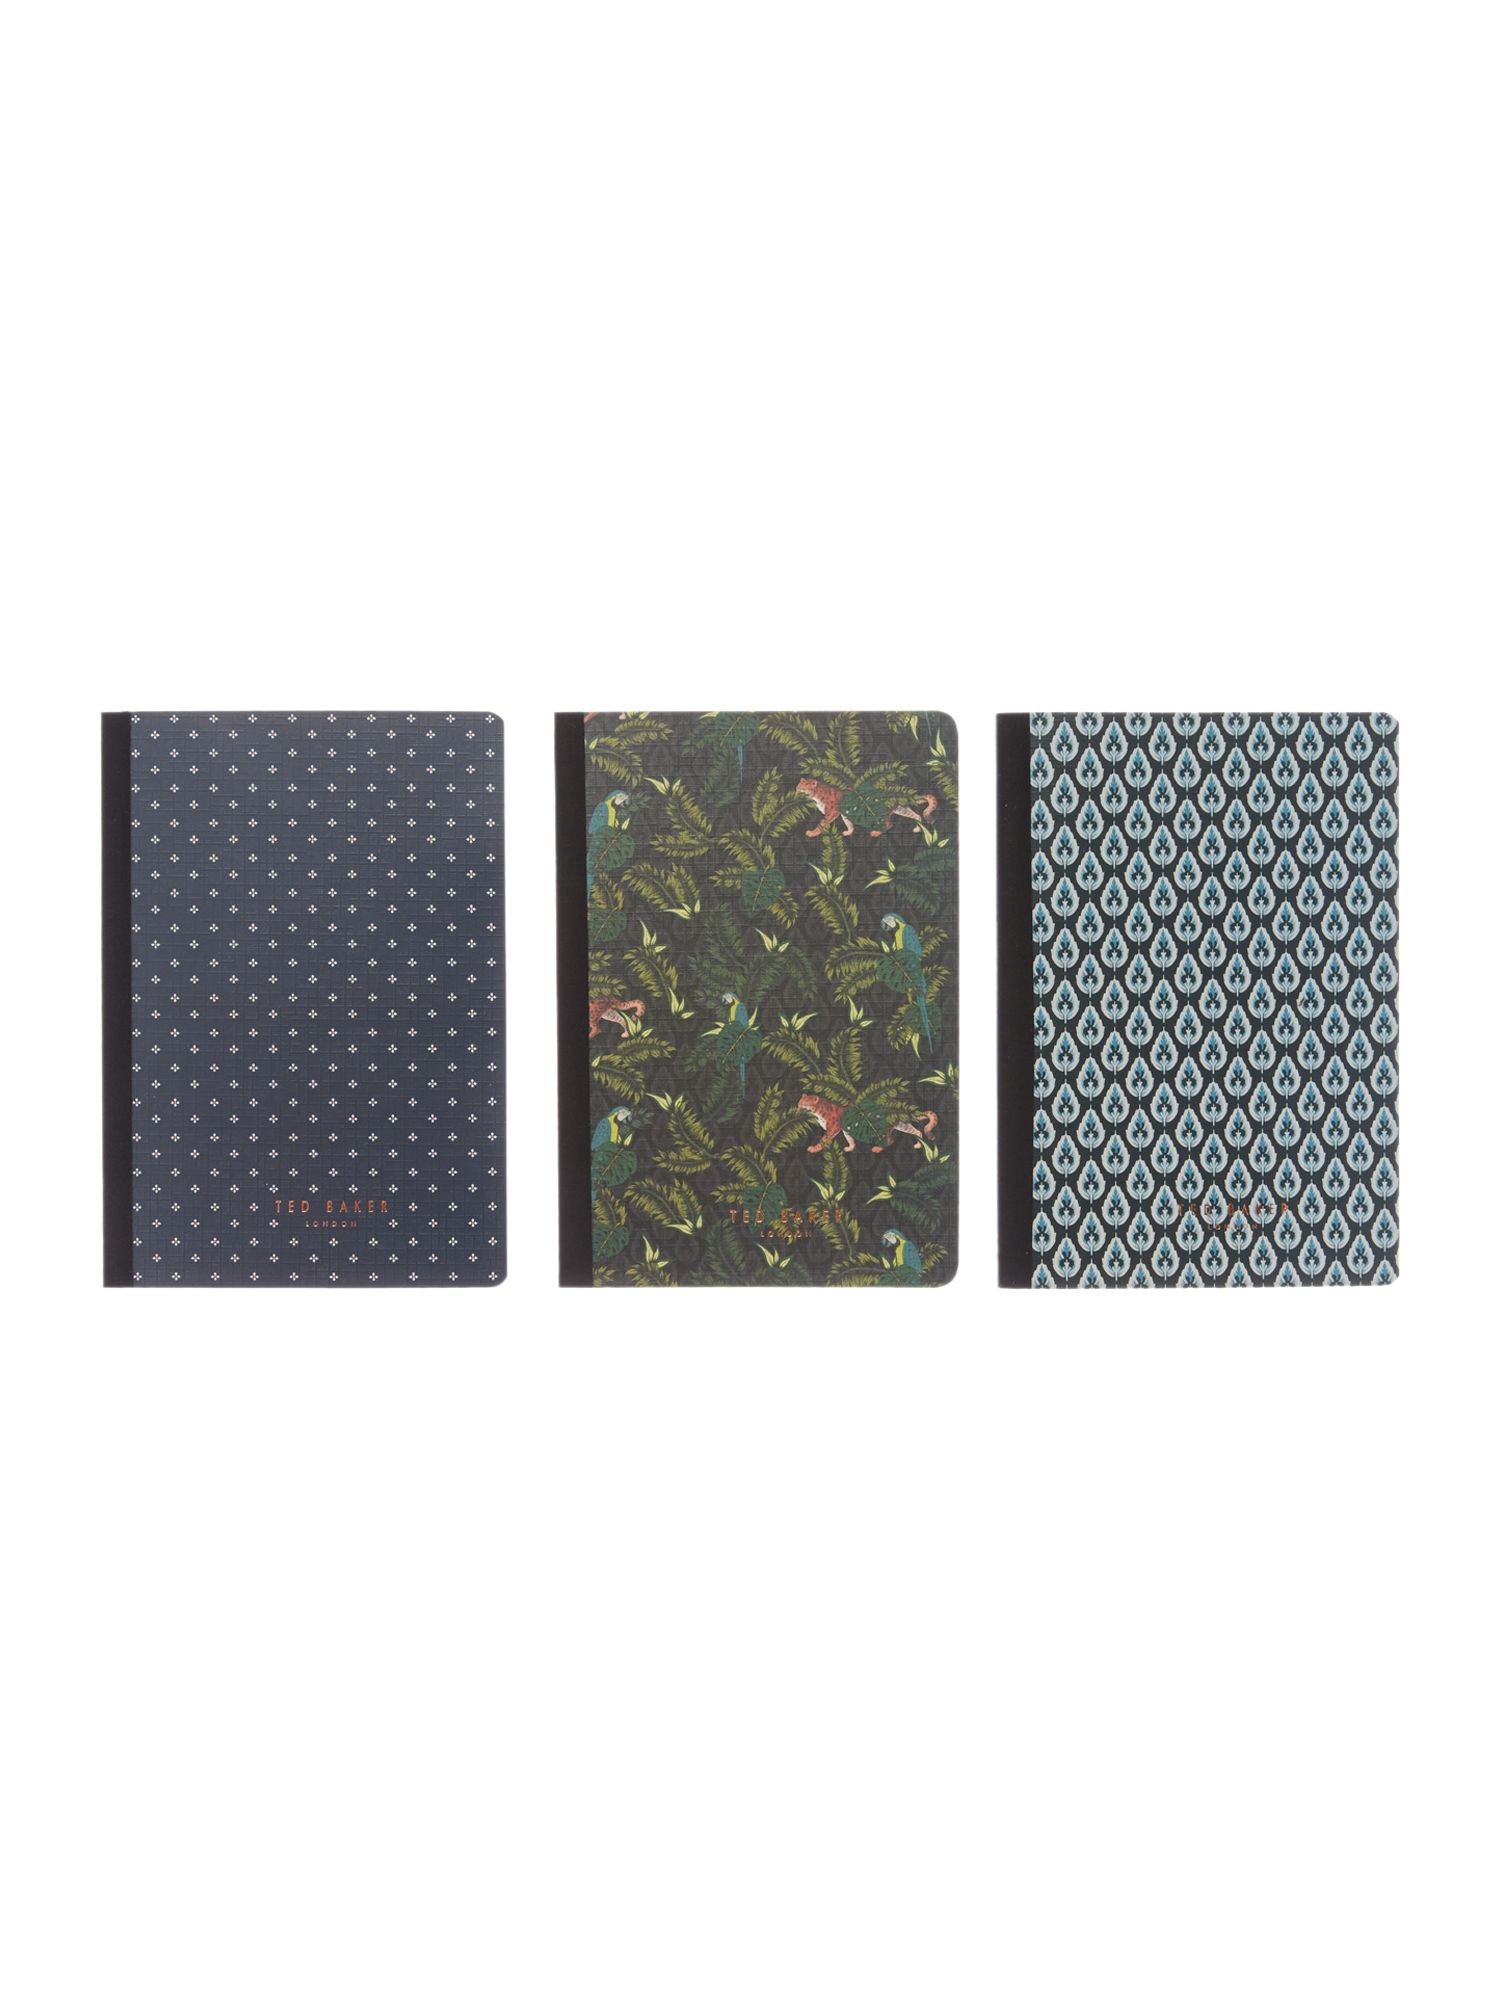 Ted Baker 3 Small Memo Books Gift Set